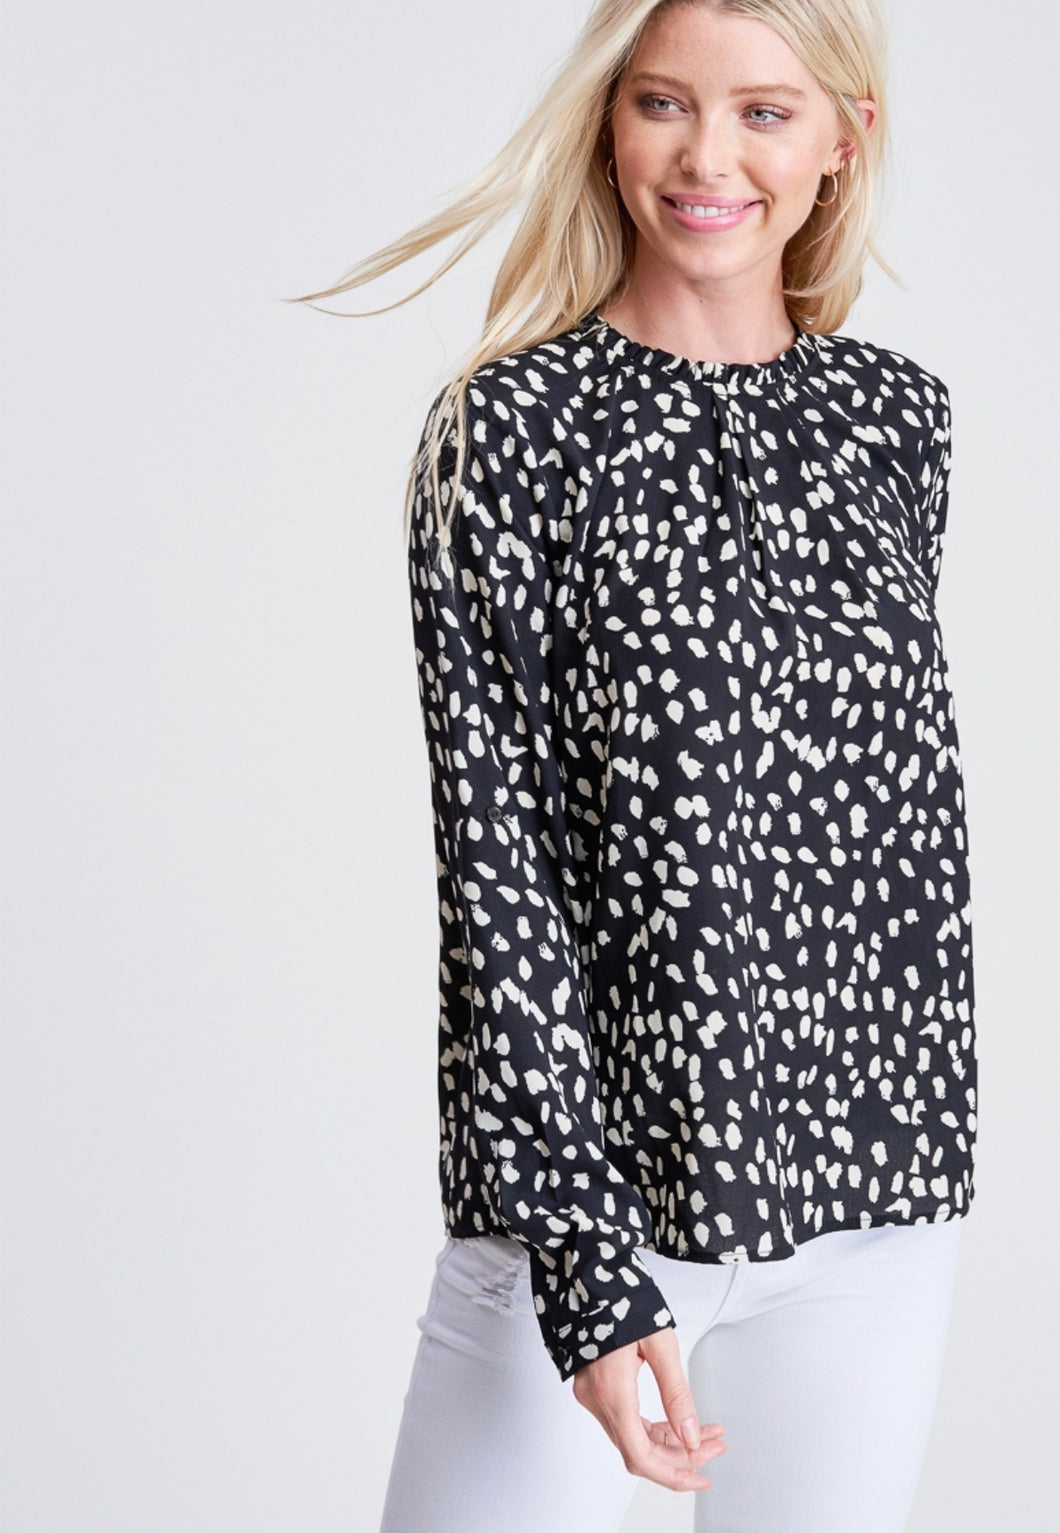 954 - Black Spotted Ruffled Round Neck Top